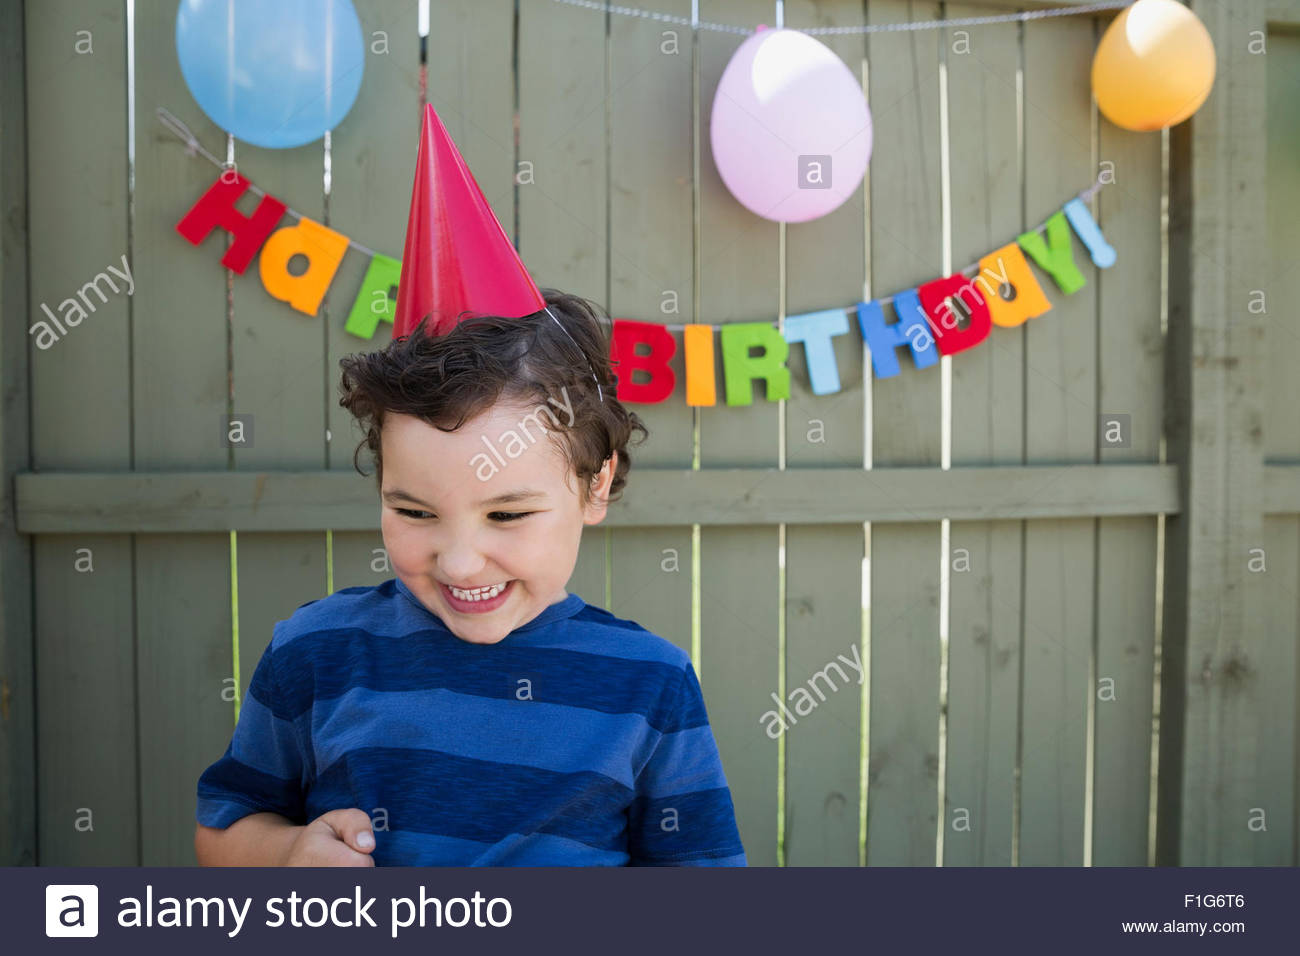 Enthusiastic boy wearing birthday party hat - Stock Image